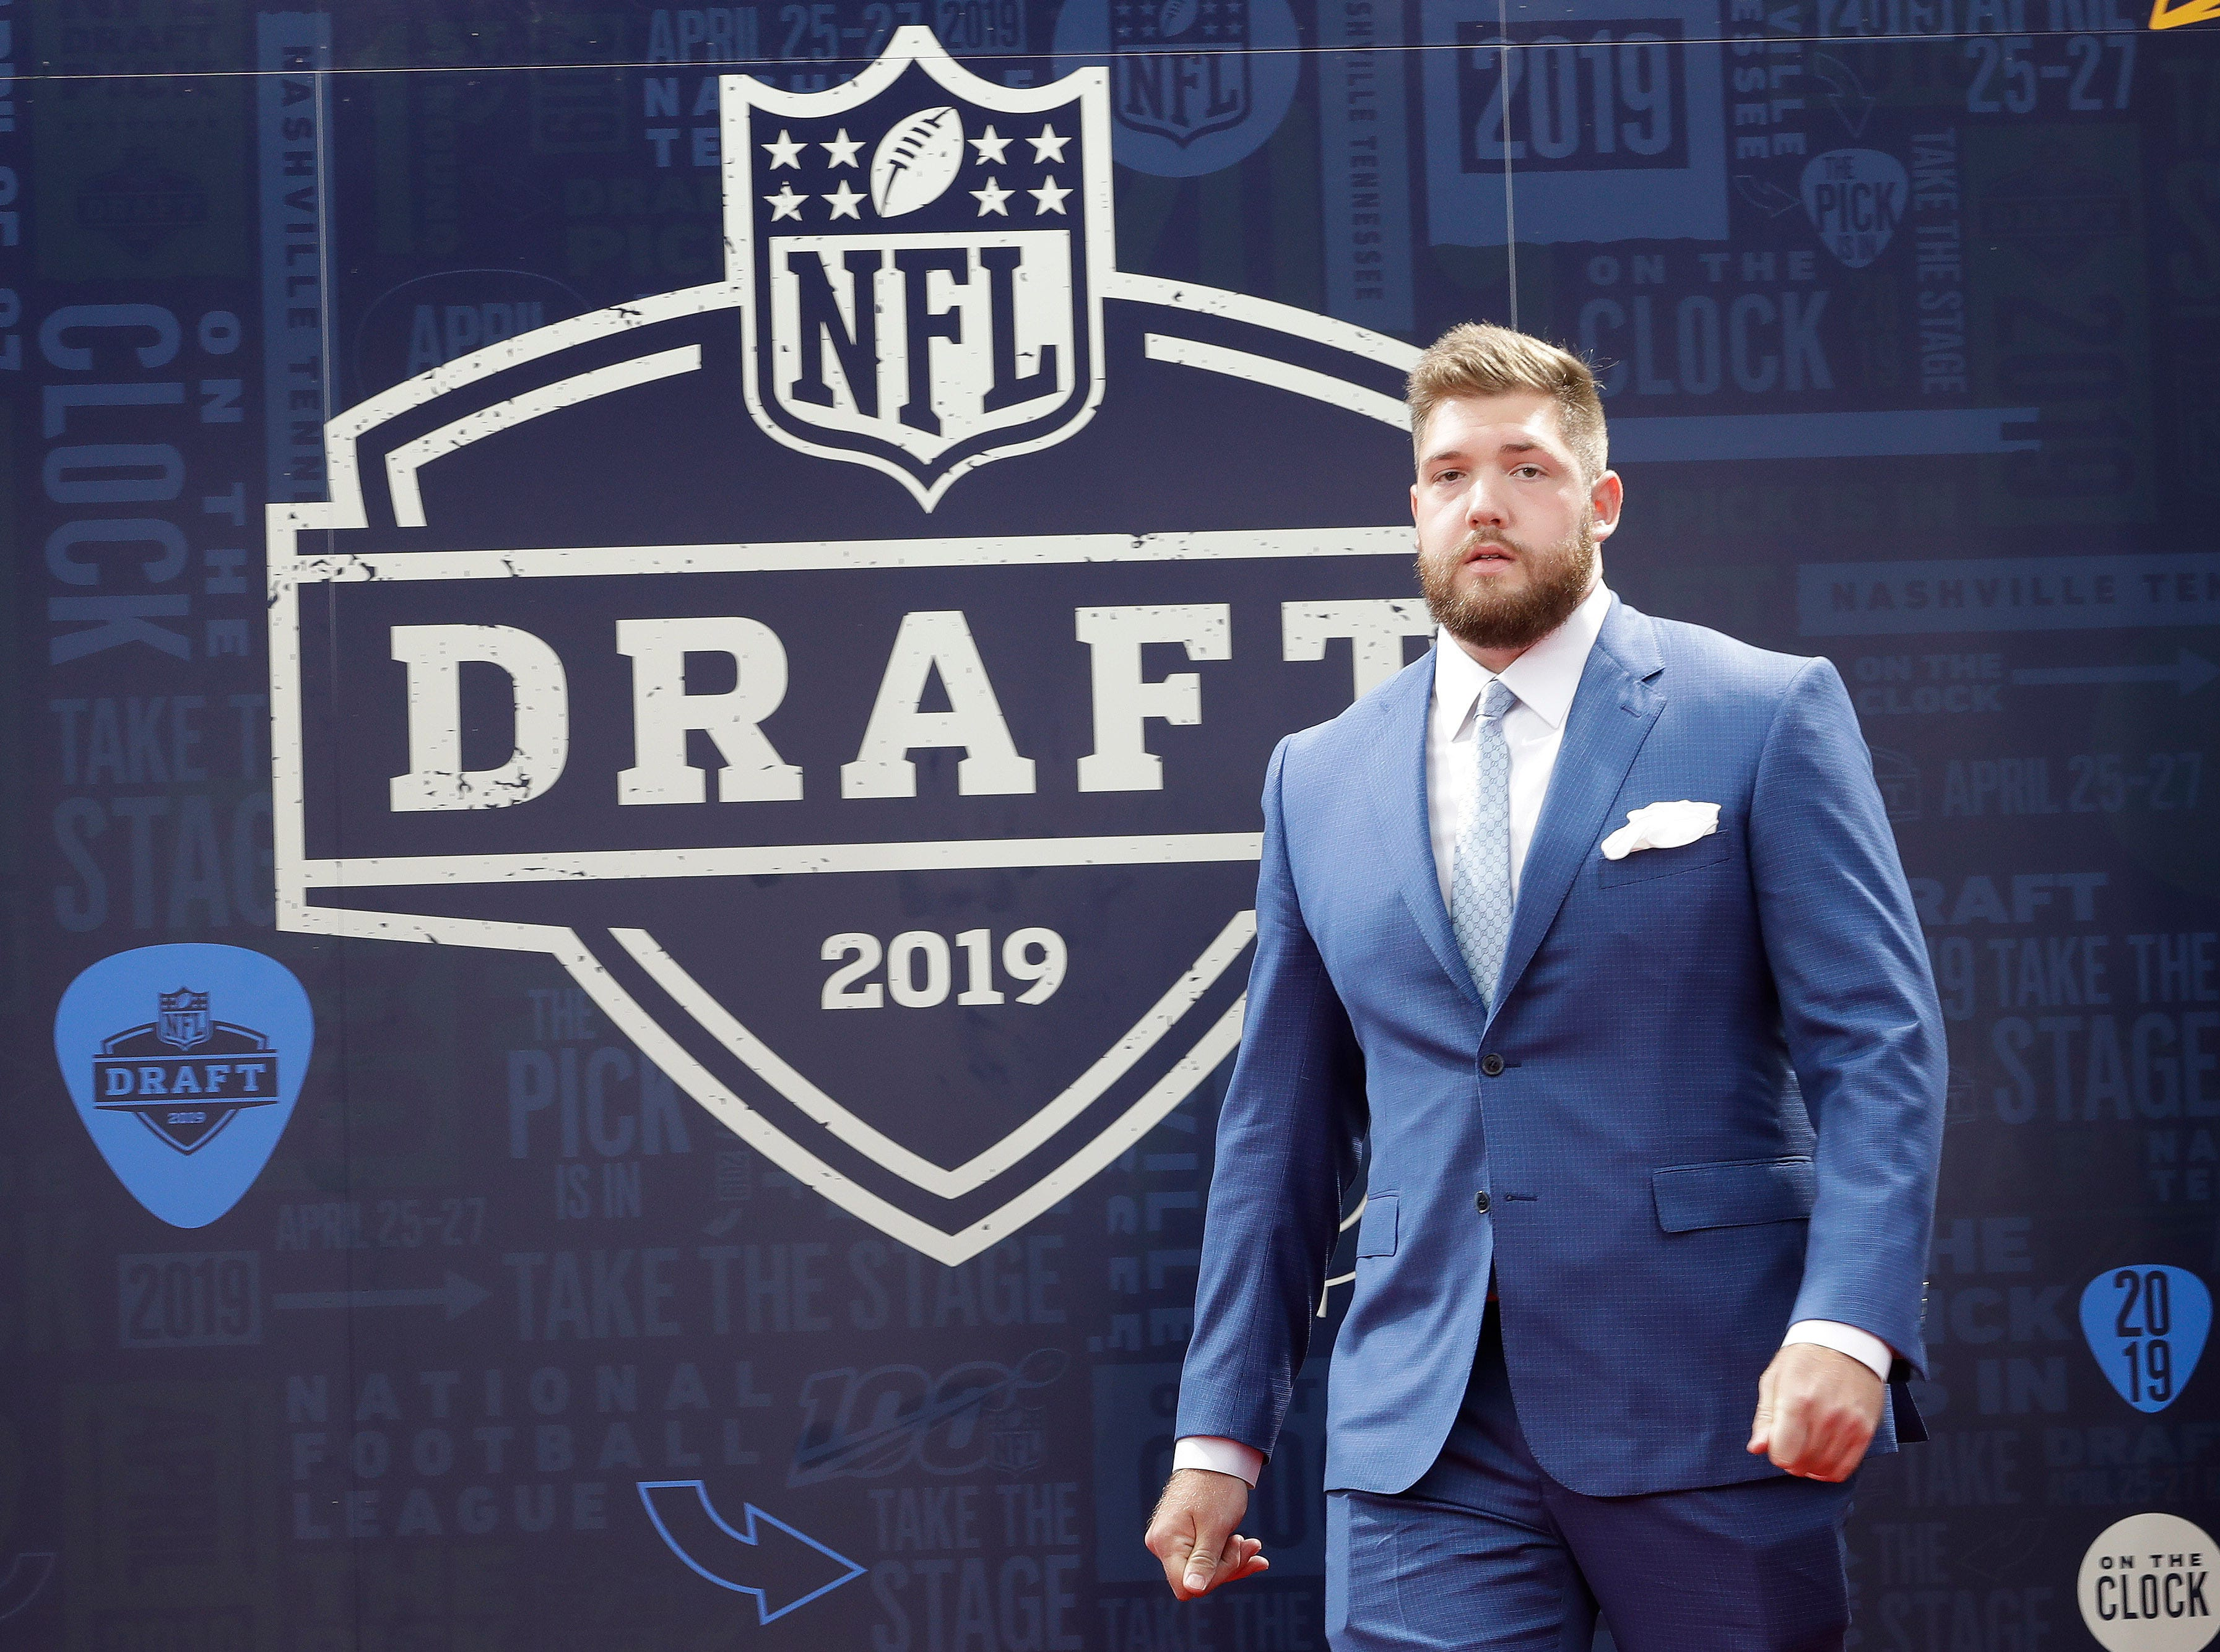 Alabama tackle Jonah Williams walks the red carpet ahead of the first round at the NFL football draft, Thursday, April 25, 2019, in Nashville, Tenn. (AP Photo/Steve Helber)